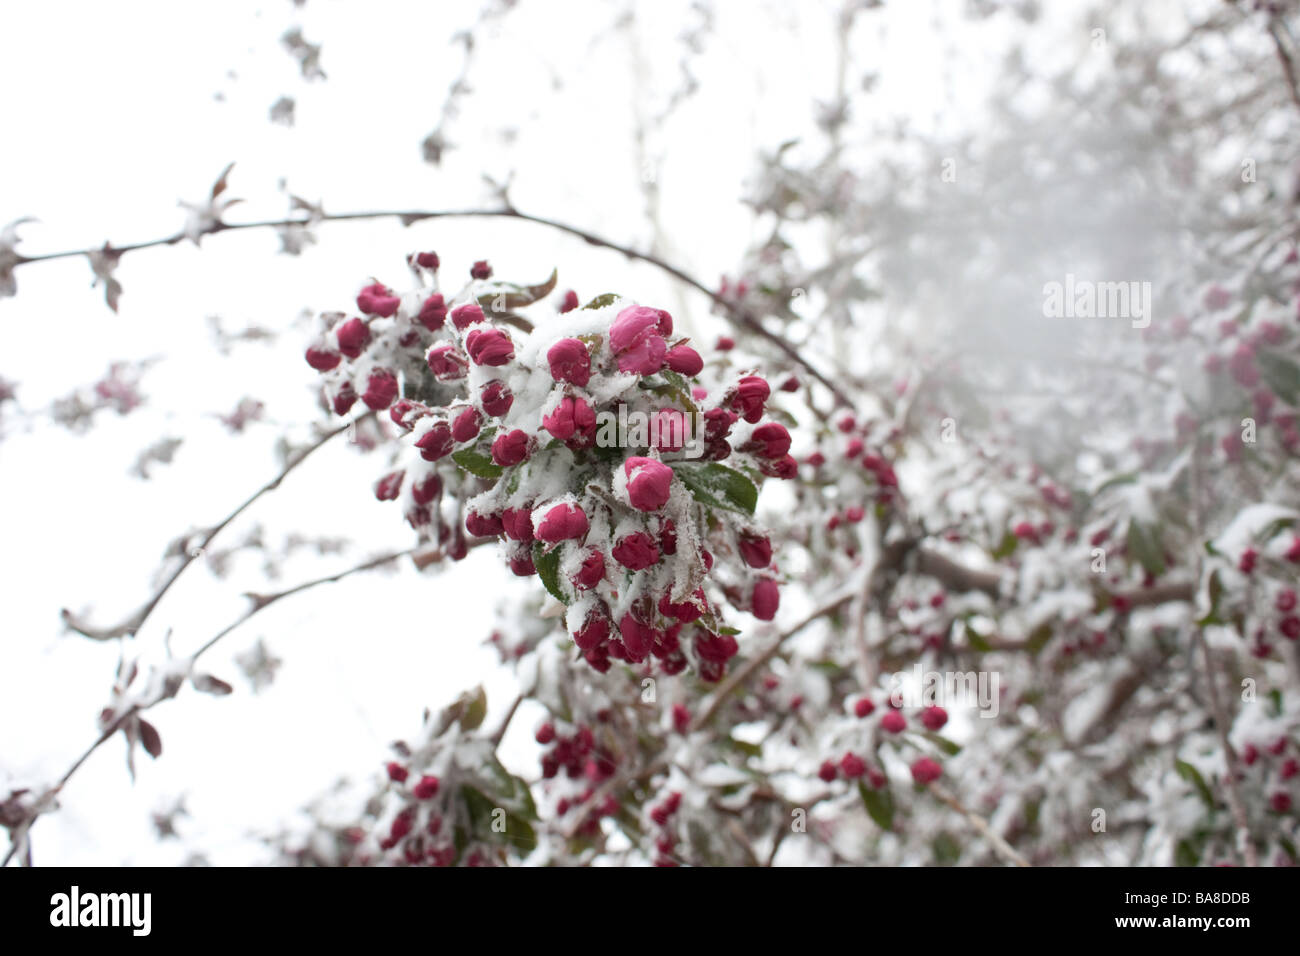 a-closeup-photo-of-crabapple-blossoms-covered-in-snow-BA8DDB.jpg